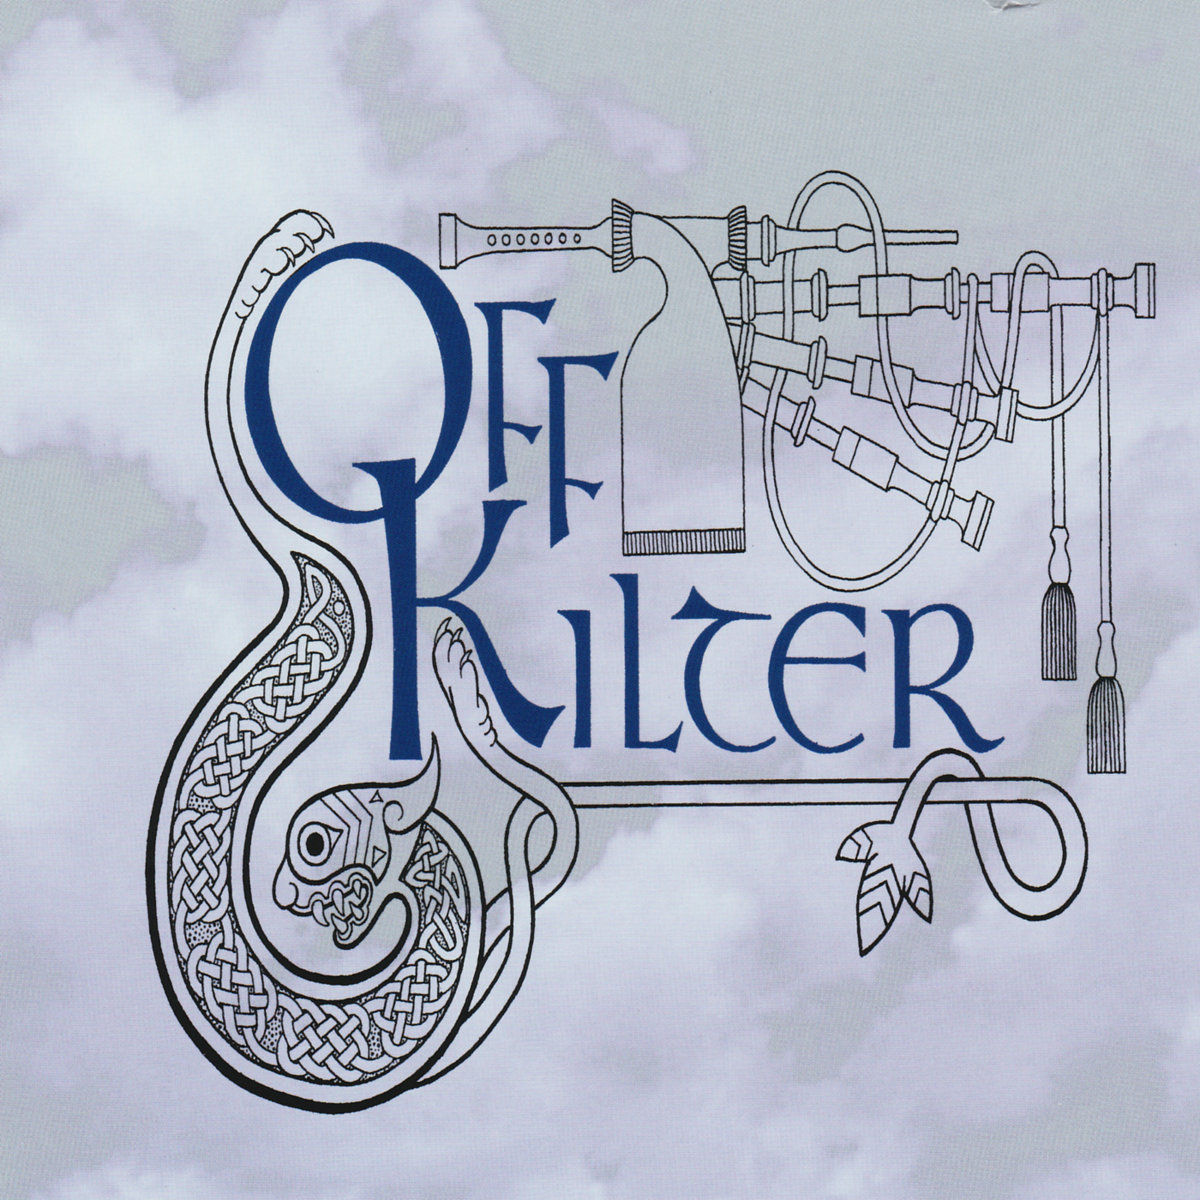 Nova Scotia/Scotland the Brave | Off Kilter